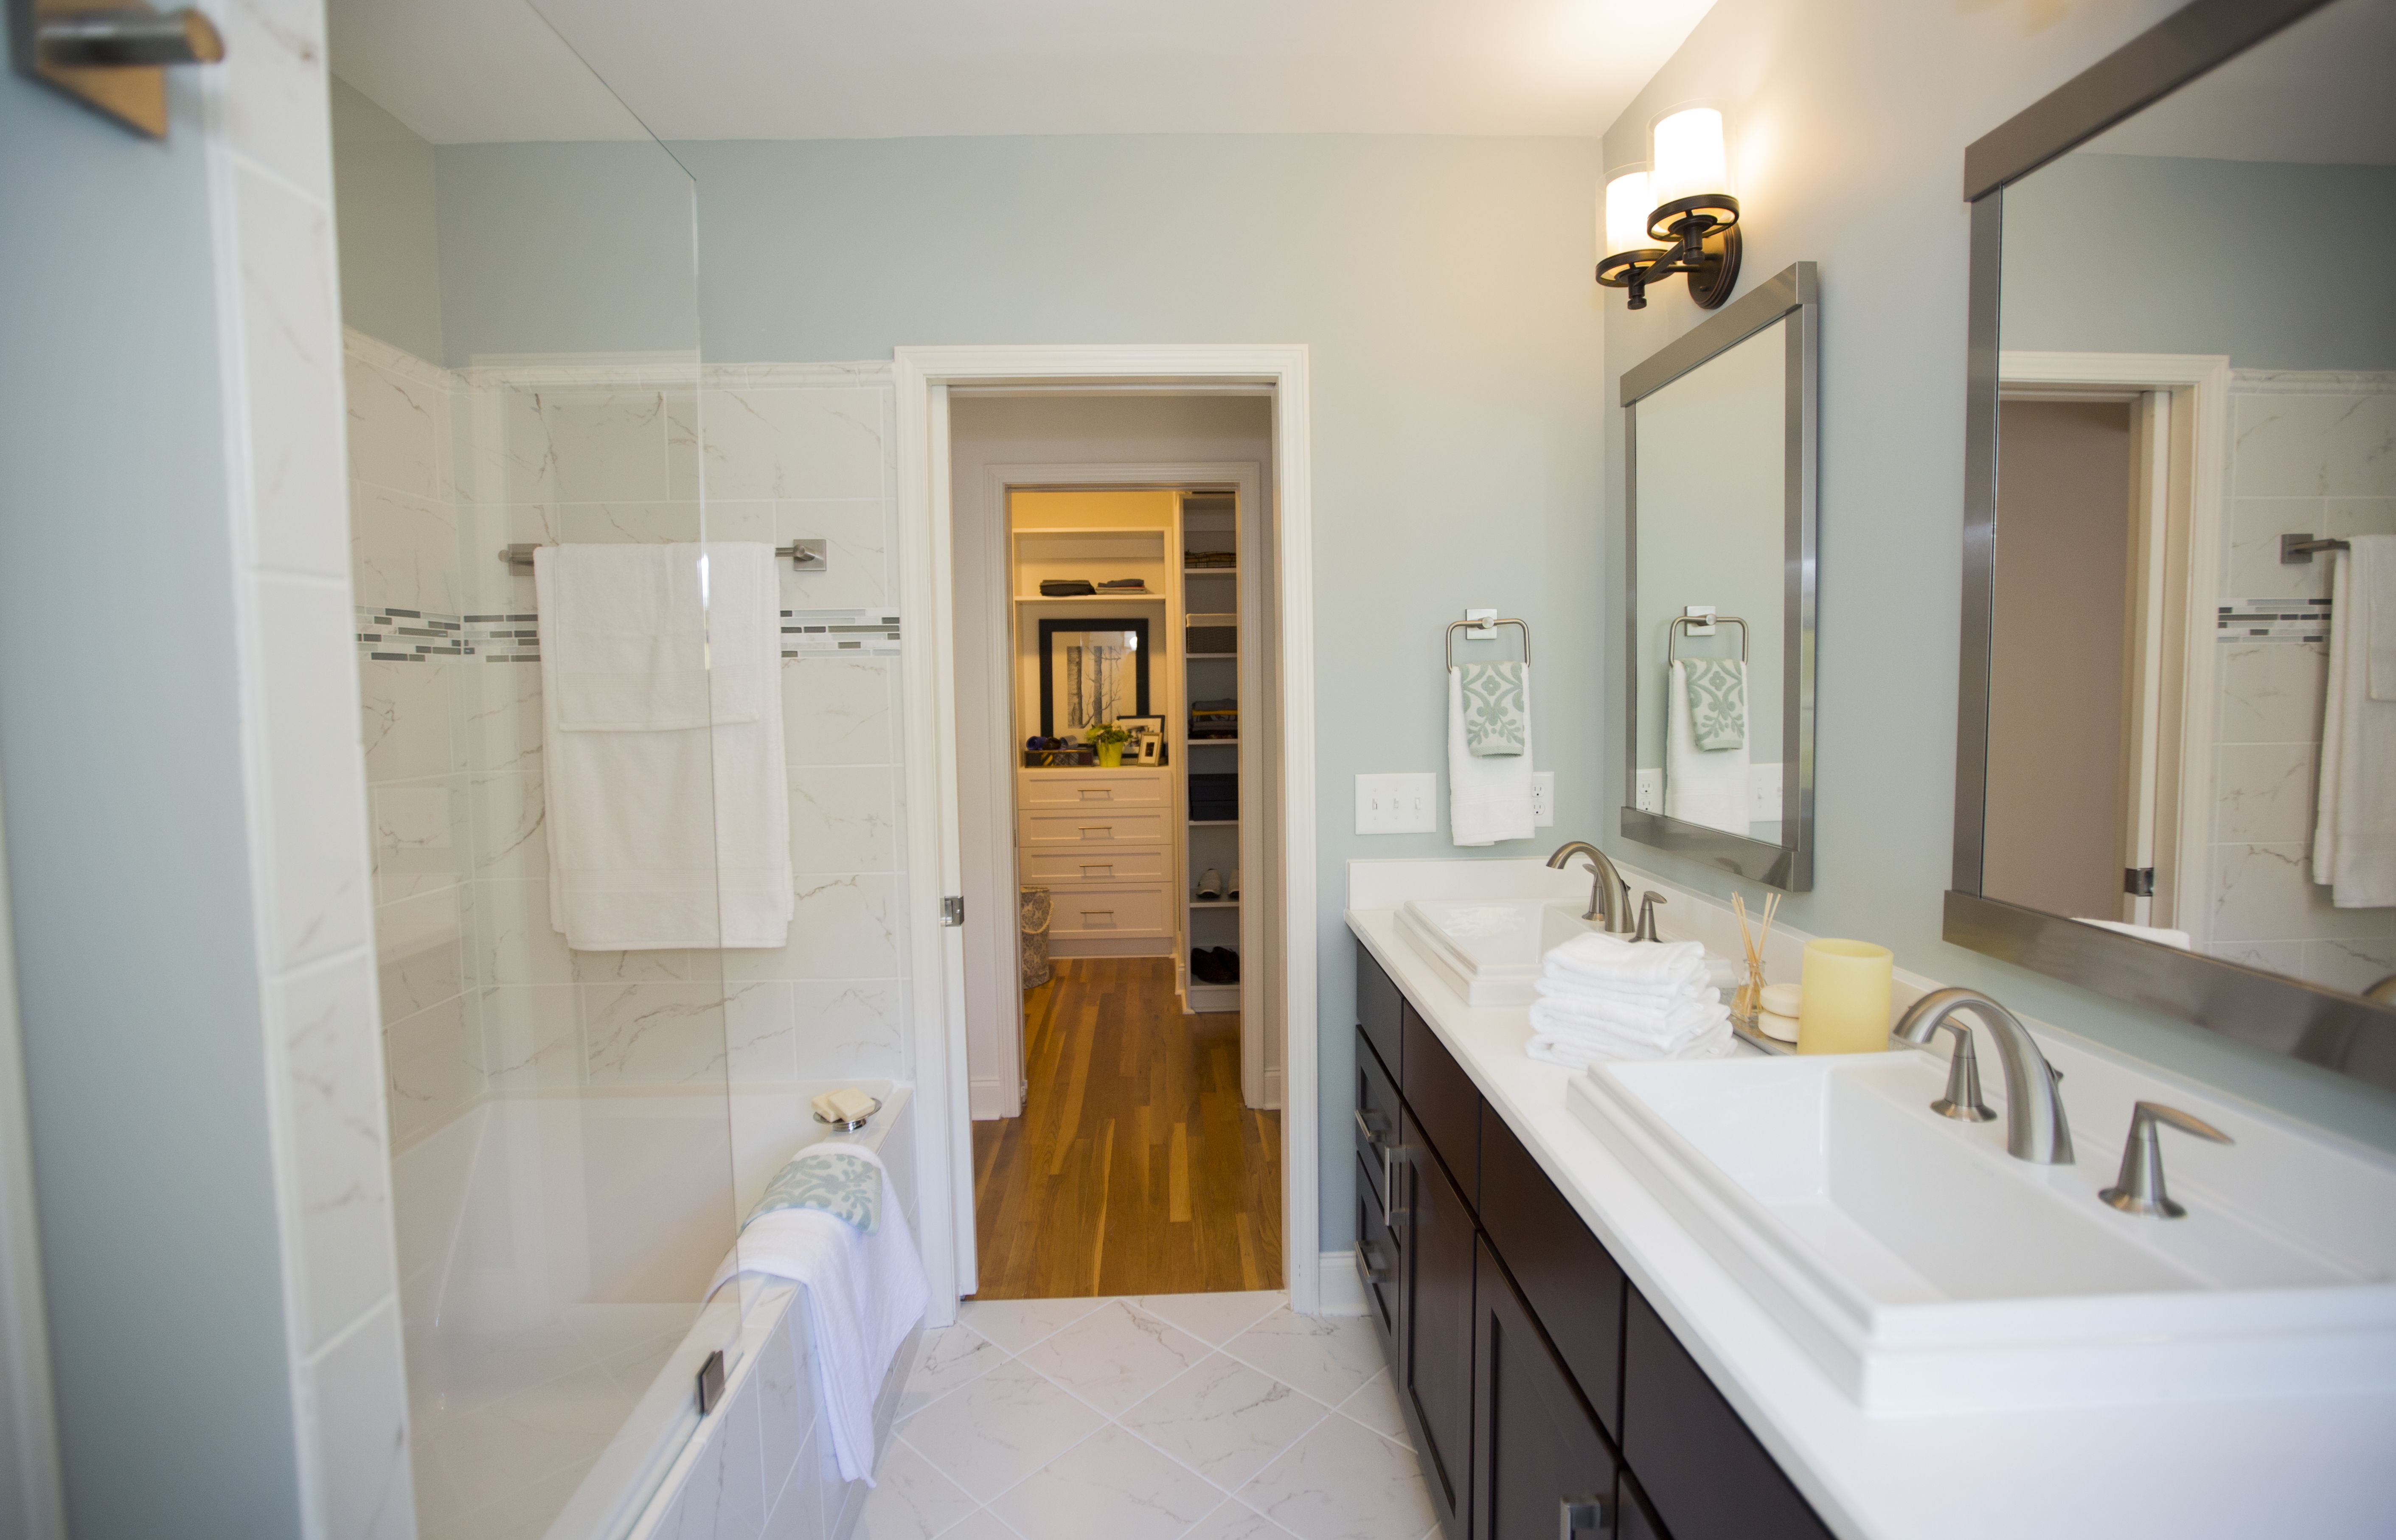 Love It Or List It North Carolina Bathroom Redesign, Kelly U0026 Eric, Episode  60131